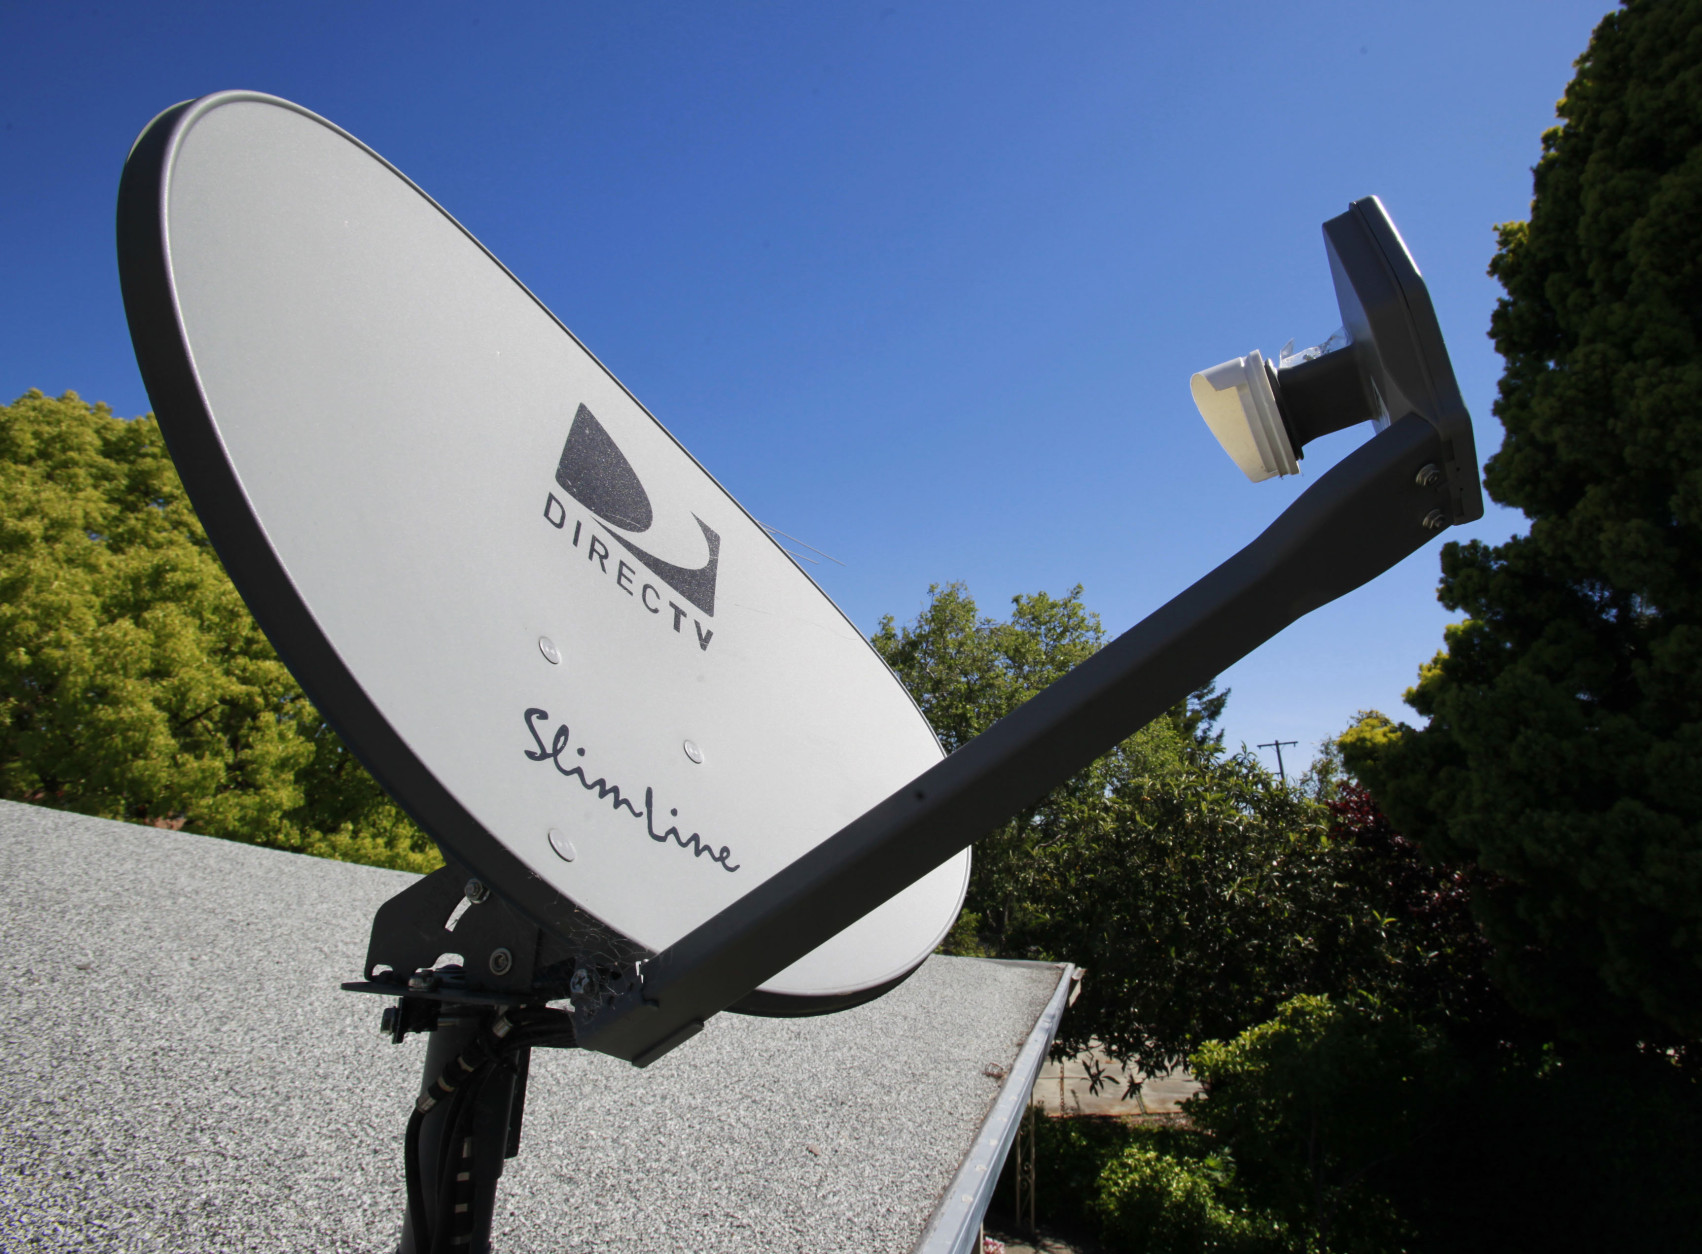 FILE - In this May 6, 2010 file photo, a DirecTV satellite dish is attached to a roof at a home in Palo Alto, Calif. The government is taking the nation's biggest satellite TV provider to court, accusing DirecTV of misleading millions of consumers about the cost of its programming. The Federal Trade Commission said Wednesday that its complaint charges DirecTV Inc. with deceptively advertising a discounted 12-month programming package. Consumers weren't clearly told that the package requires a two-year contract, the commission said.  (AP Photo/Paul Sakuma, File)